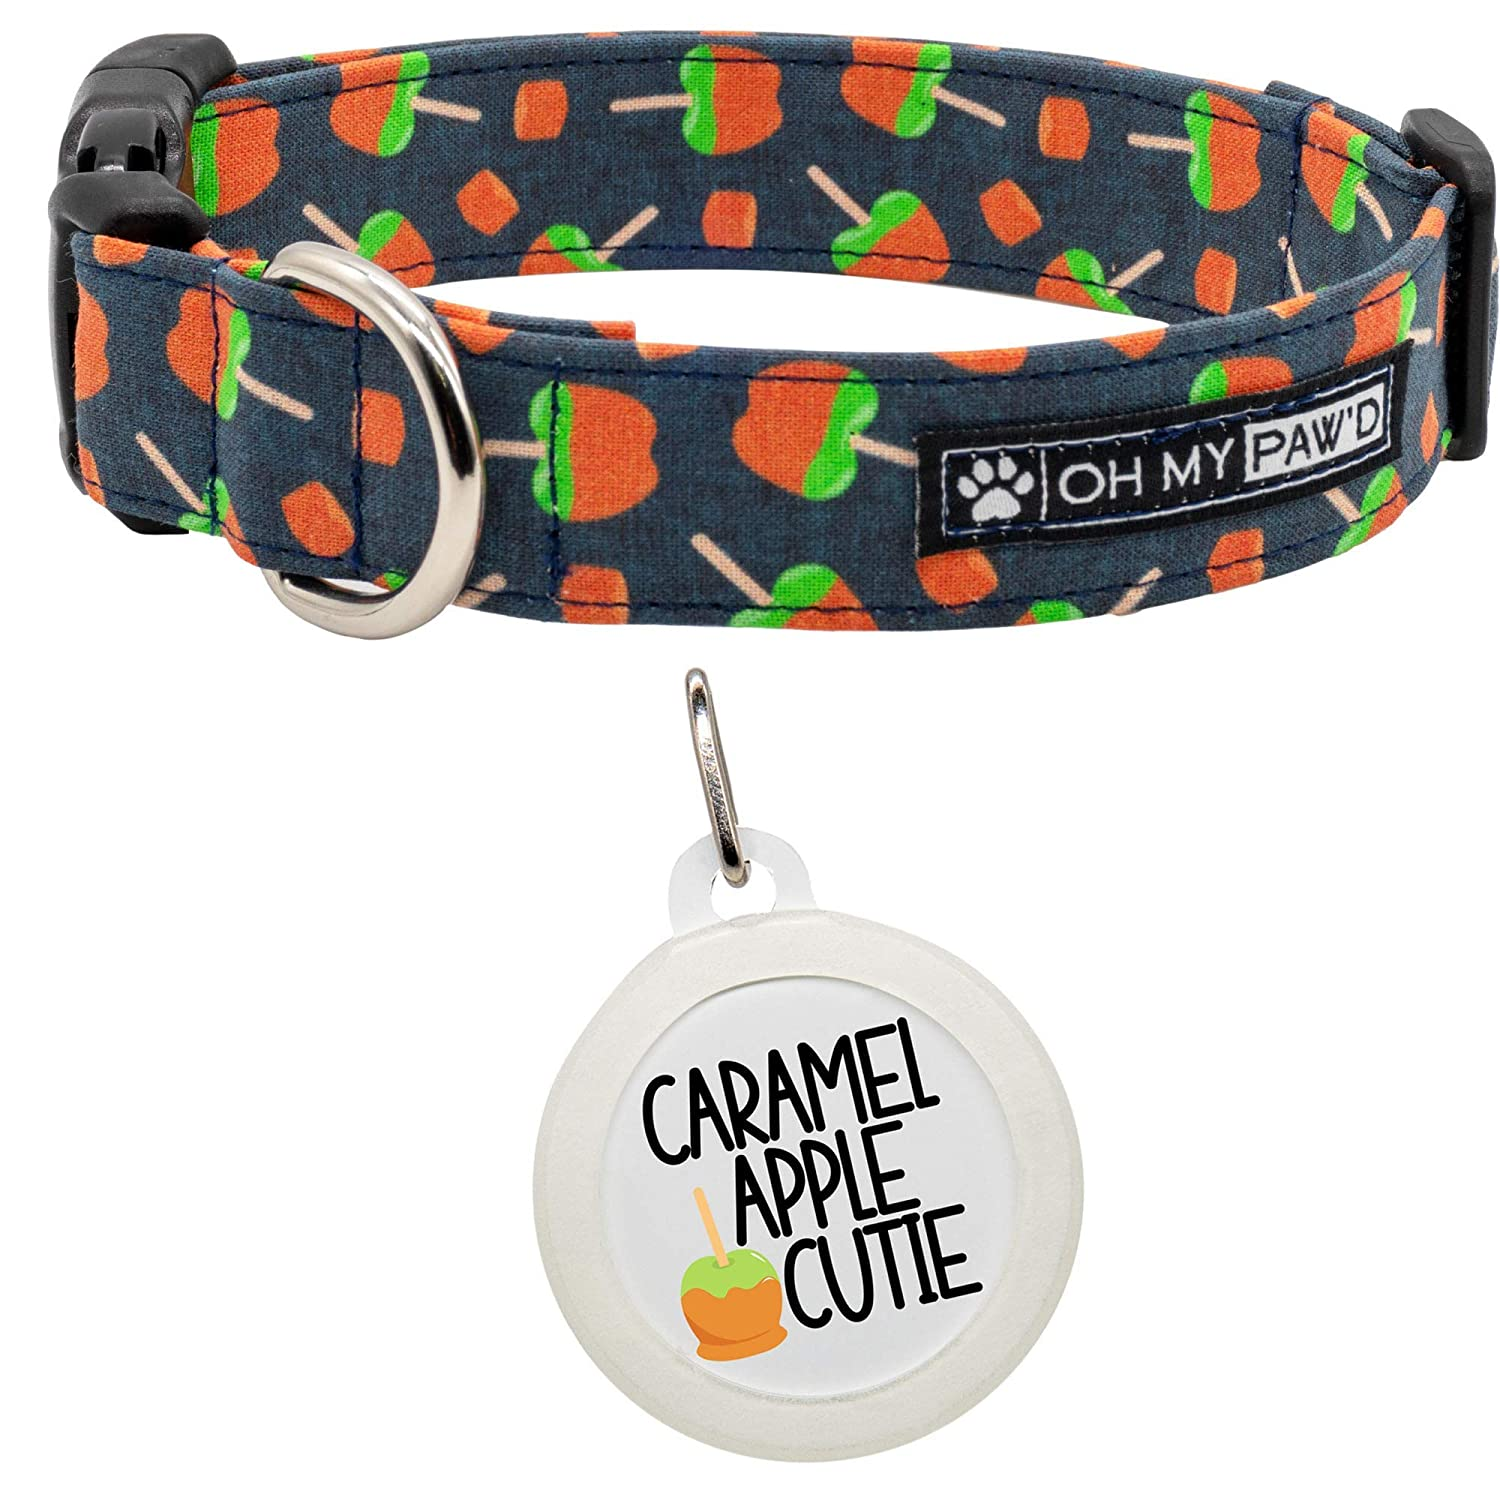 Hand Made Dog Collar by Oh My Pawd Caramel Apple Collar for Pets Size Large 1 Inch Wide and 17-25 Inches Long